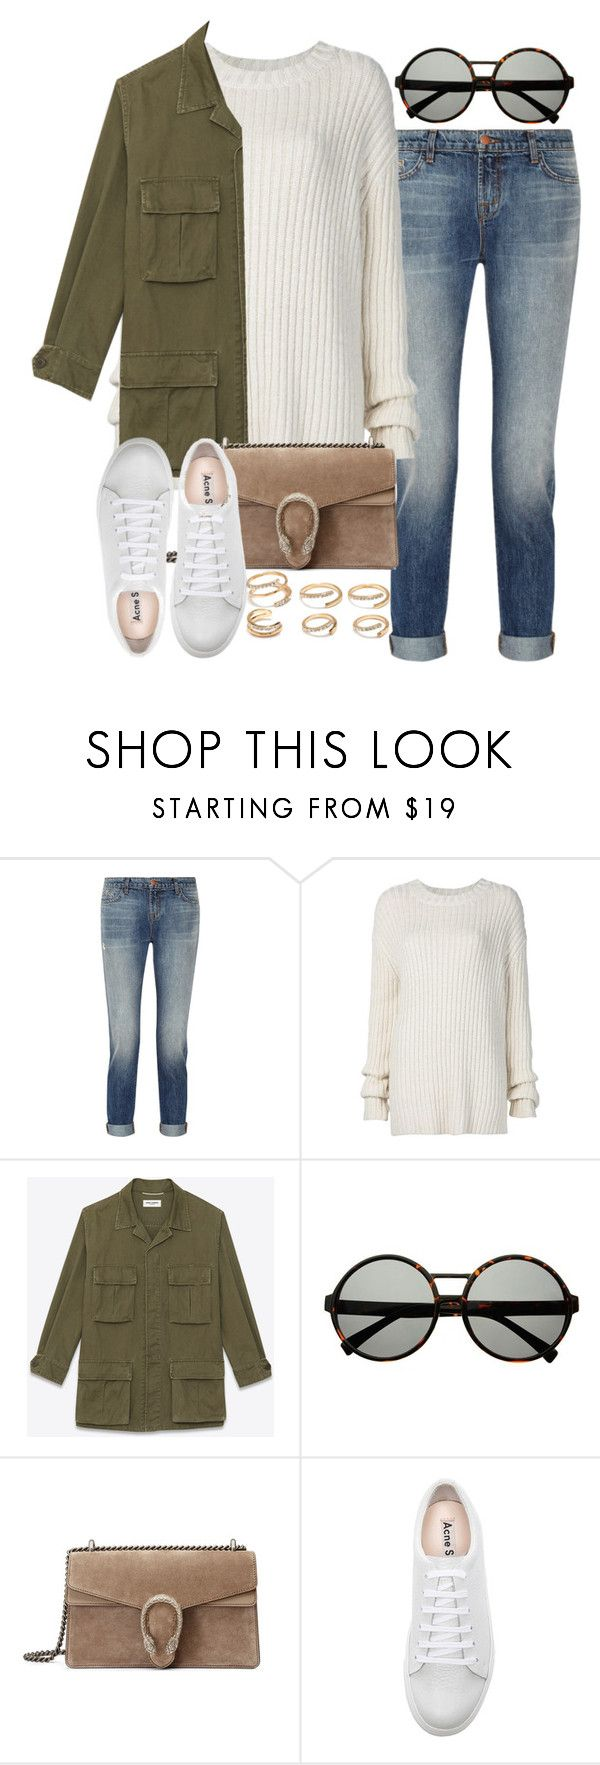 """""""Sin título #3931"""" by hellomissapple on Polyvore featuring moda, J Brand, ADAM, Yves Saint Laurent, Gucci, Acne Studios y Forever 21"""